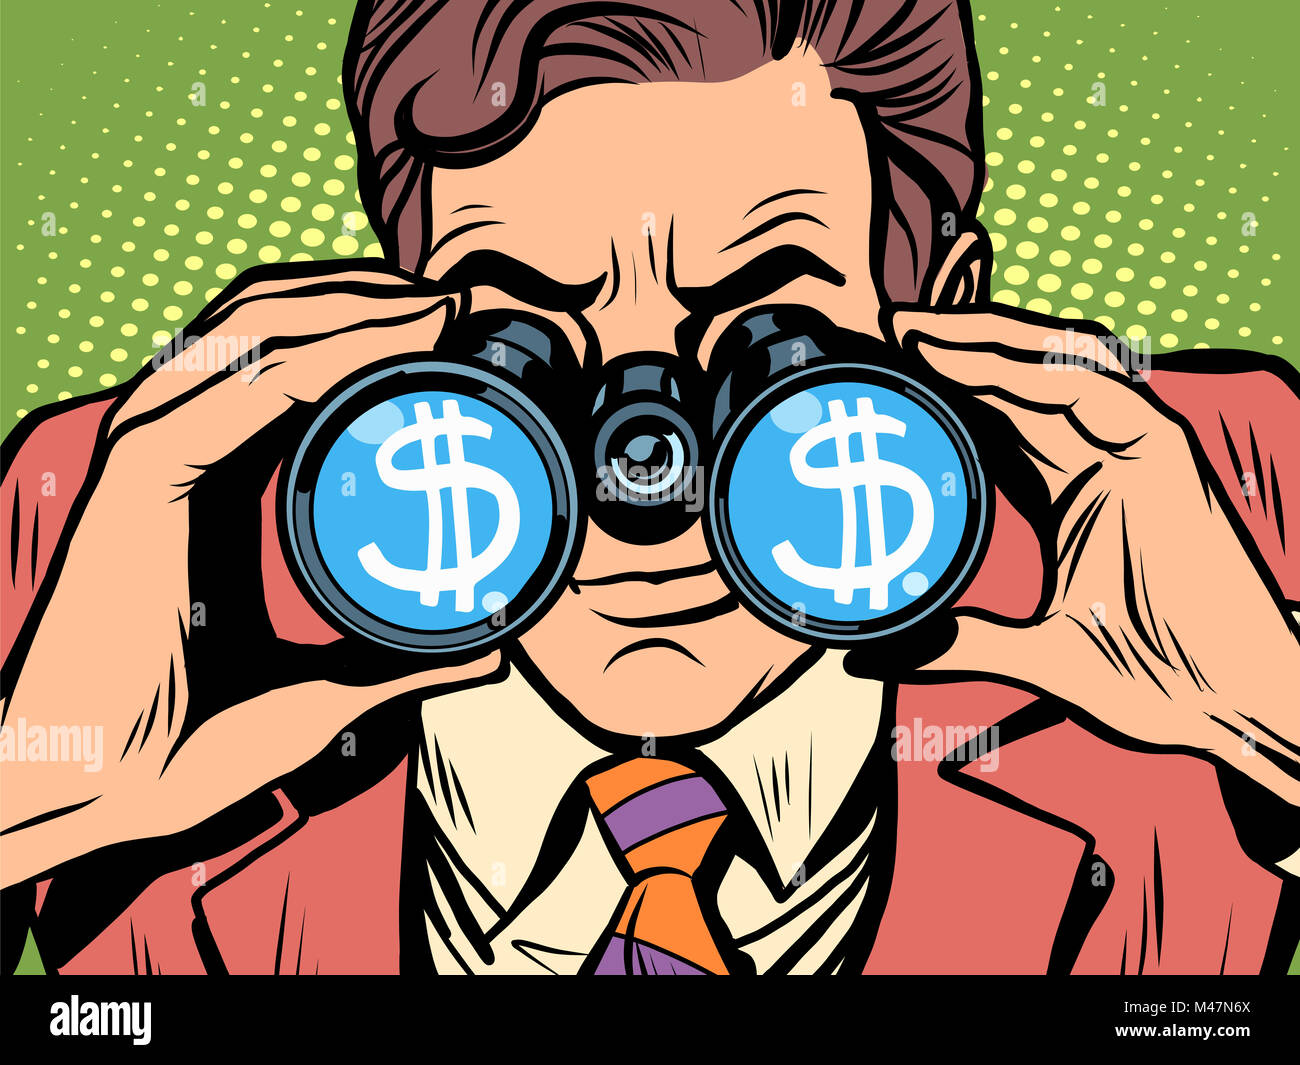 Monitoring the currency dollar exchange rate - Stock Image